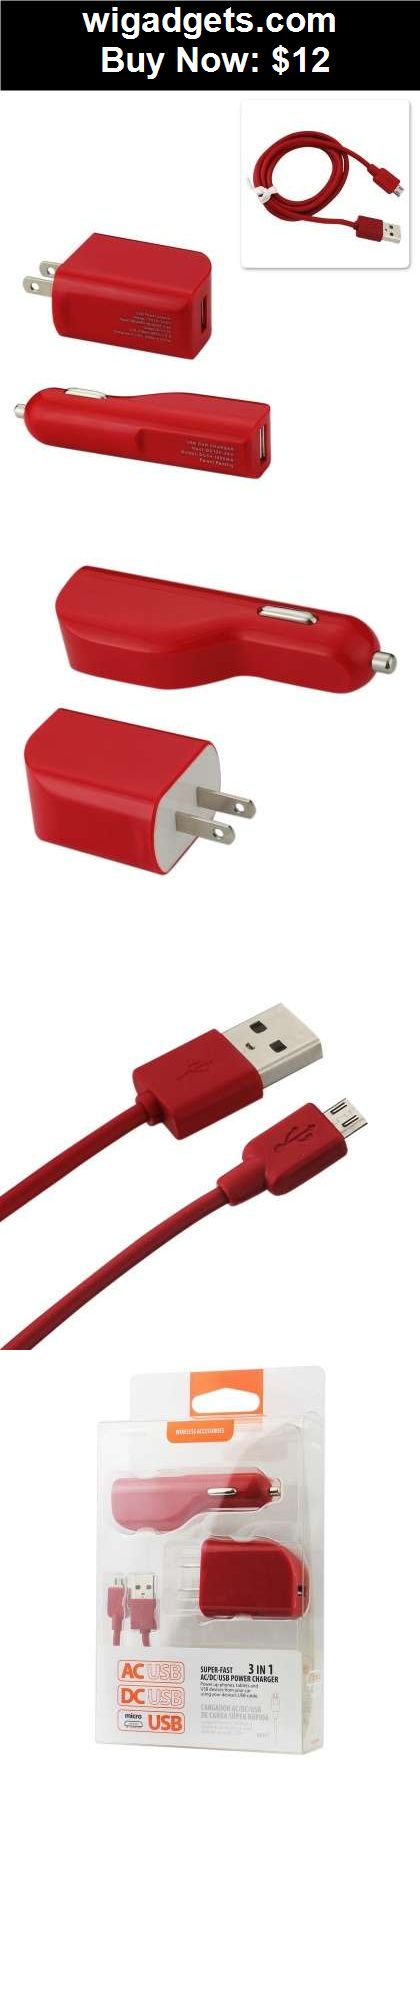 best images about lockukey on pinterest map projects charger